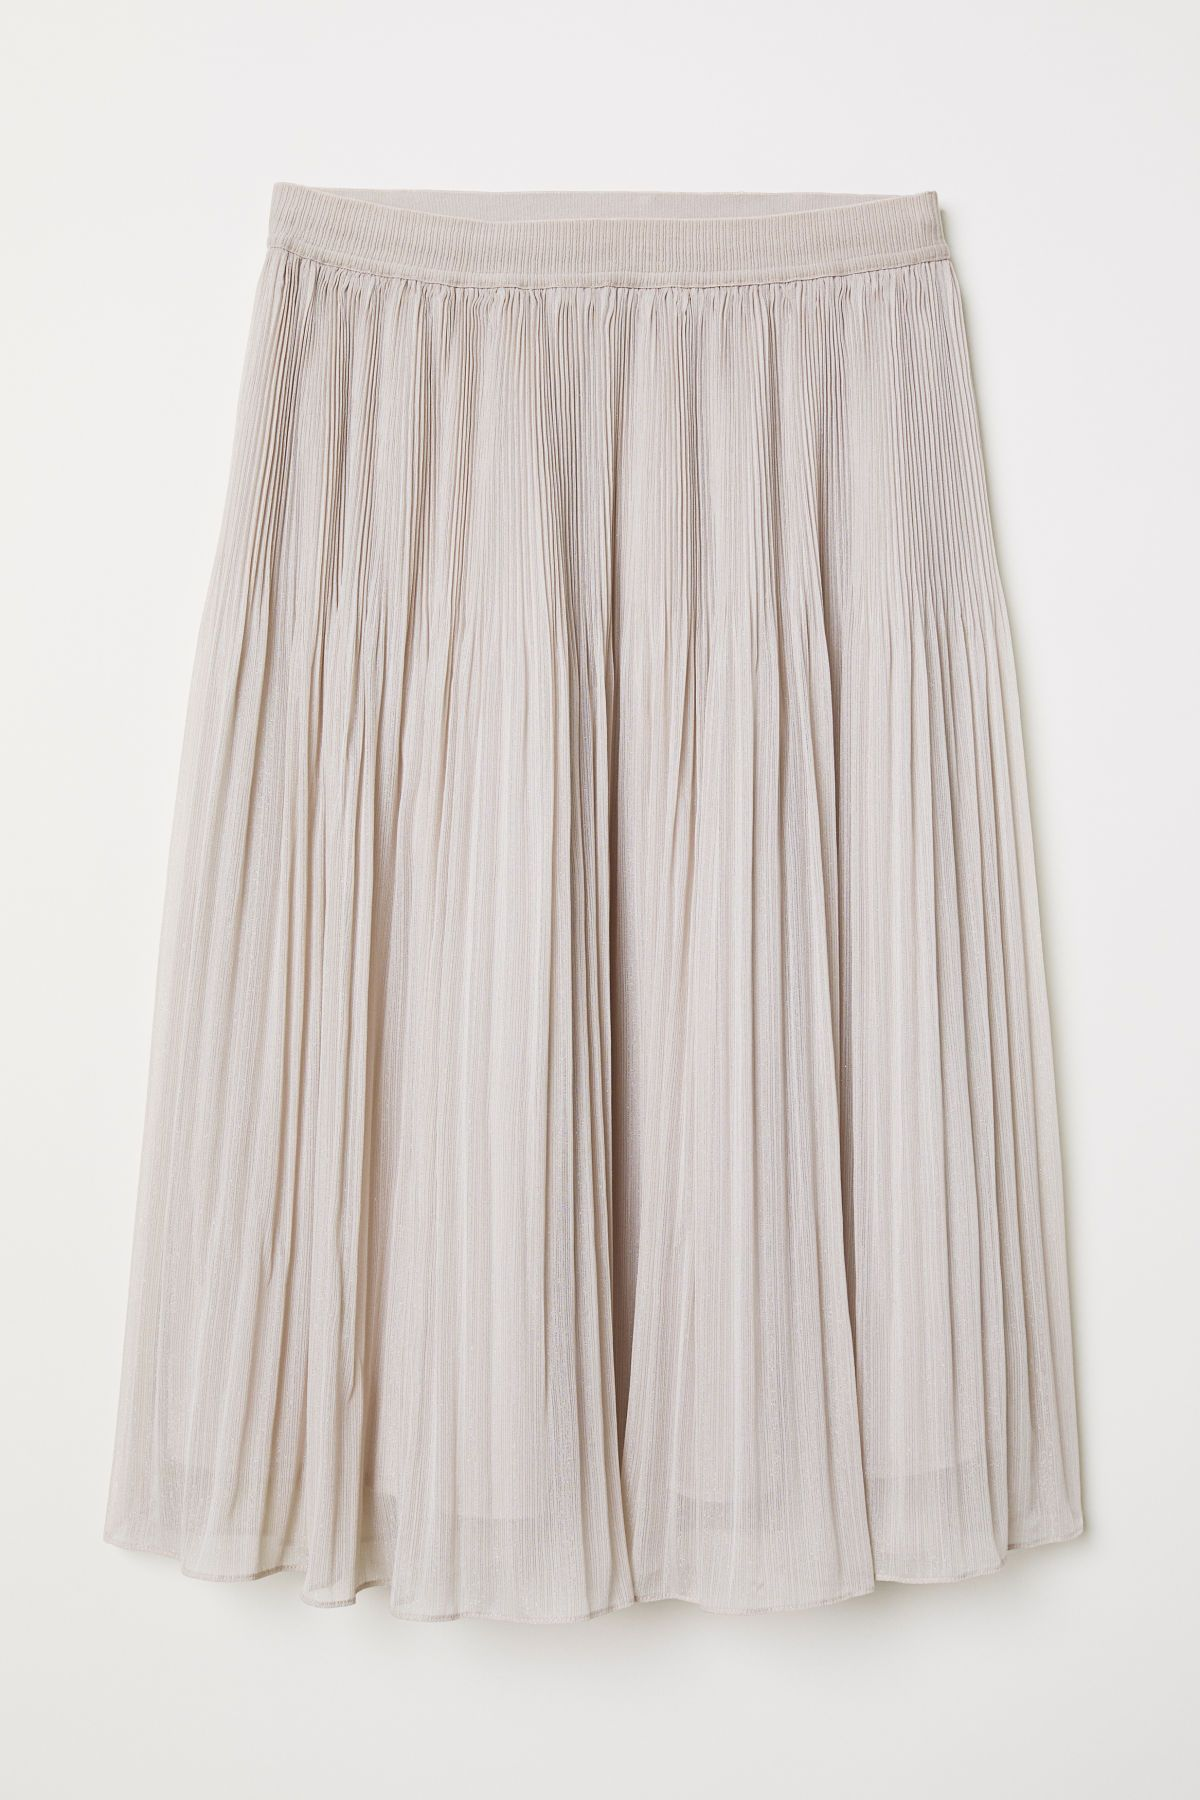 7ed791a455 Knee-length, pleated skirt in an airy weave containing glittery threads